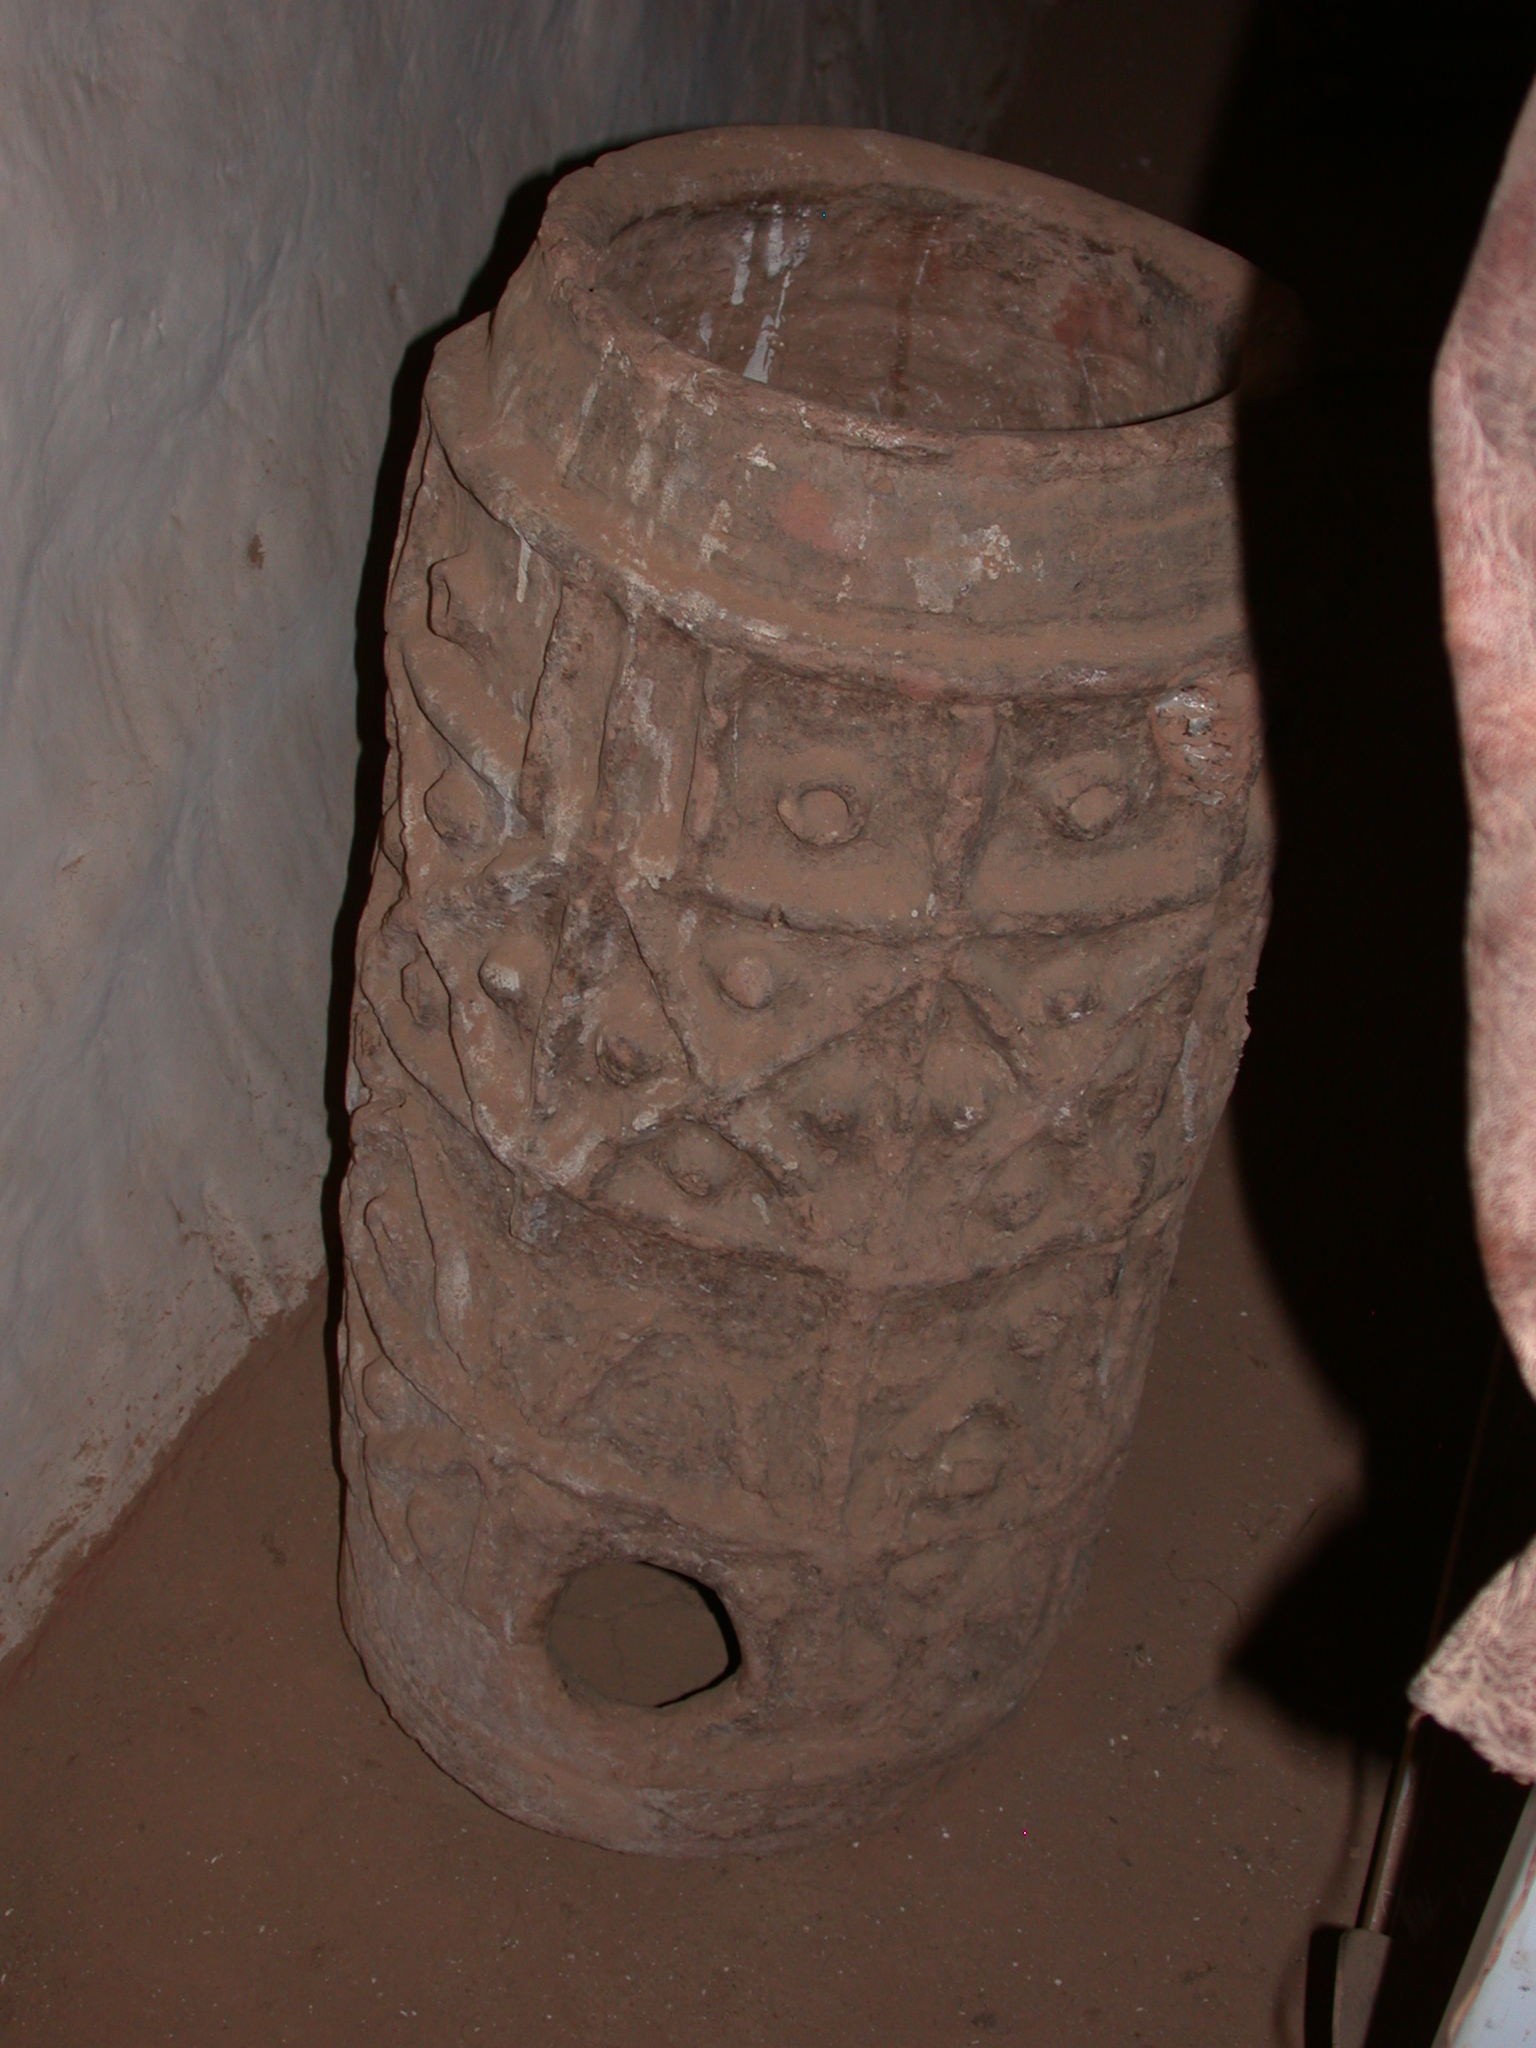 Pottery Object at Museum in Ancient City of Oulata, Mauritania